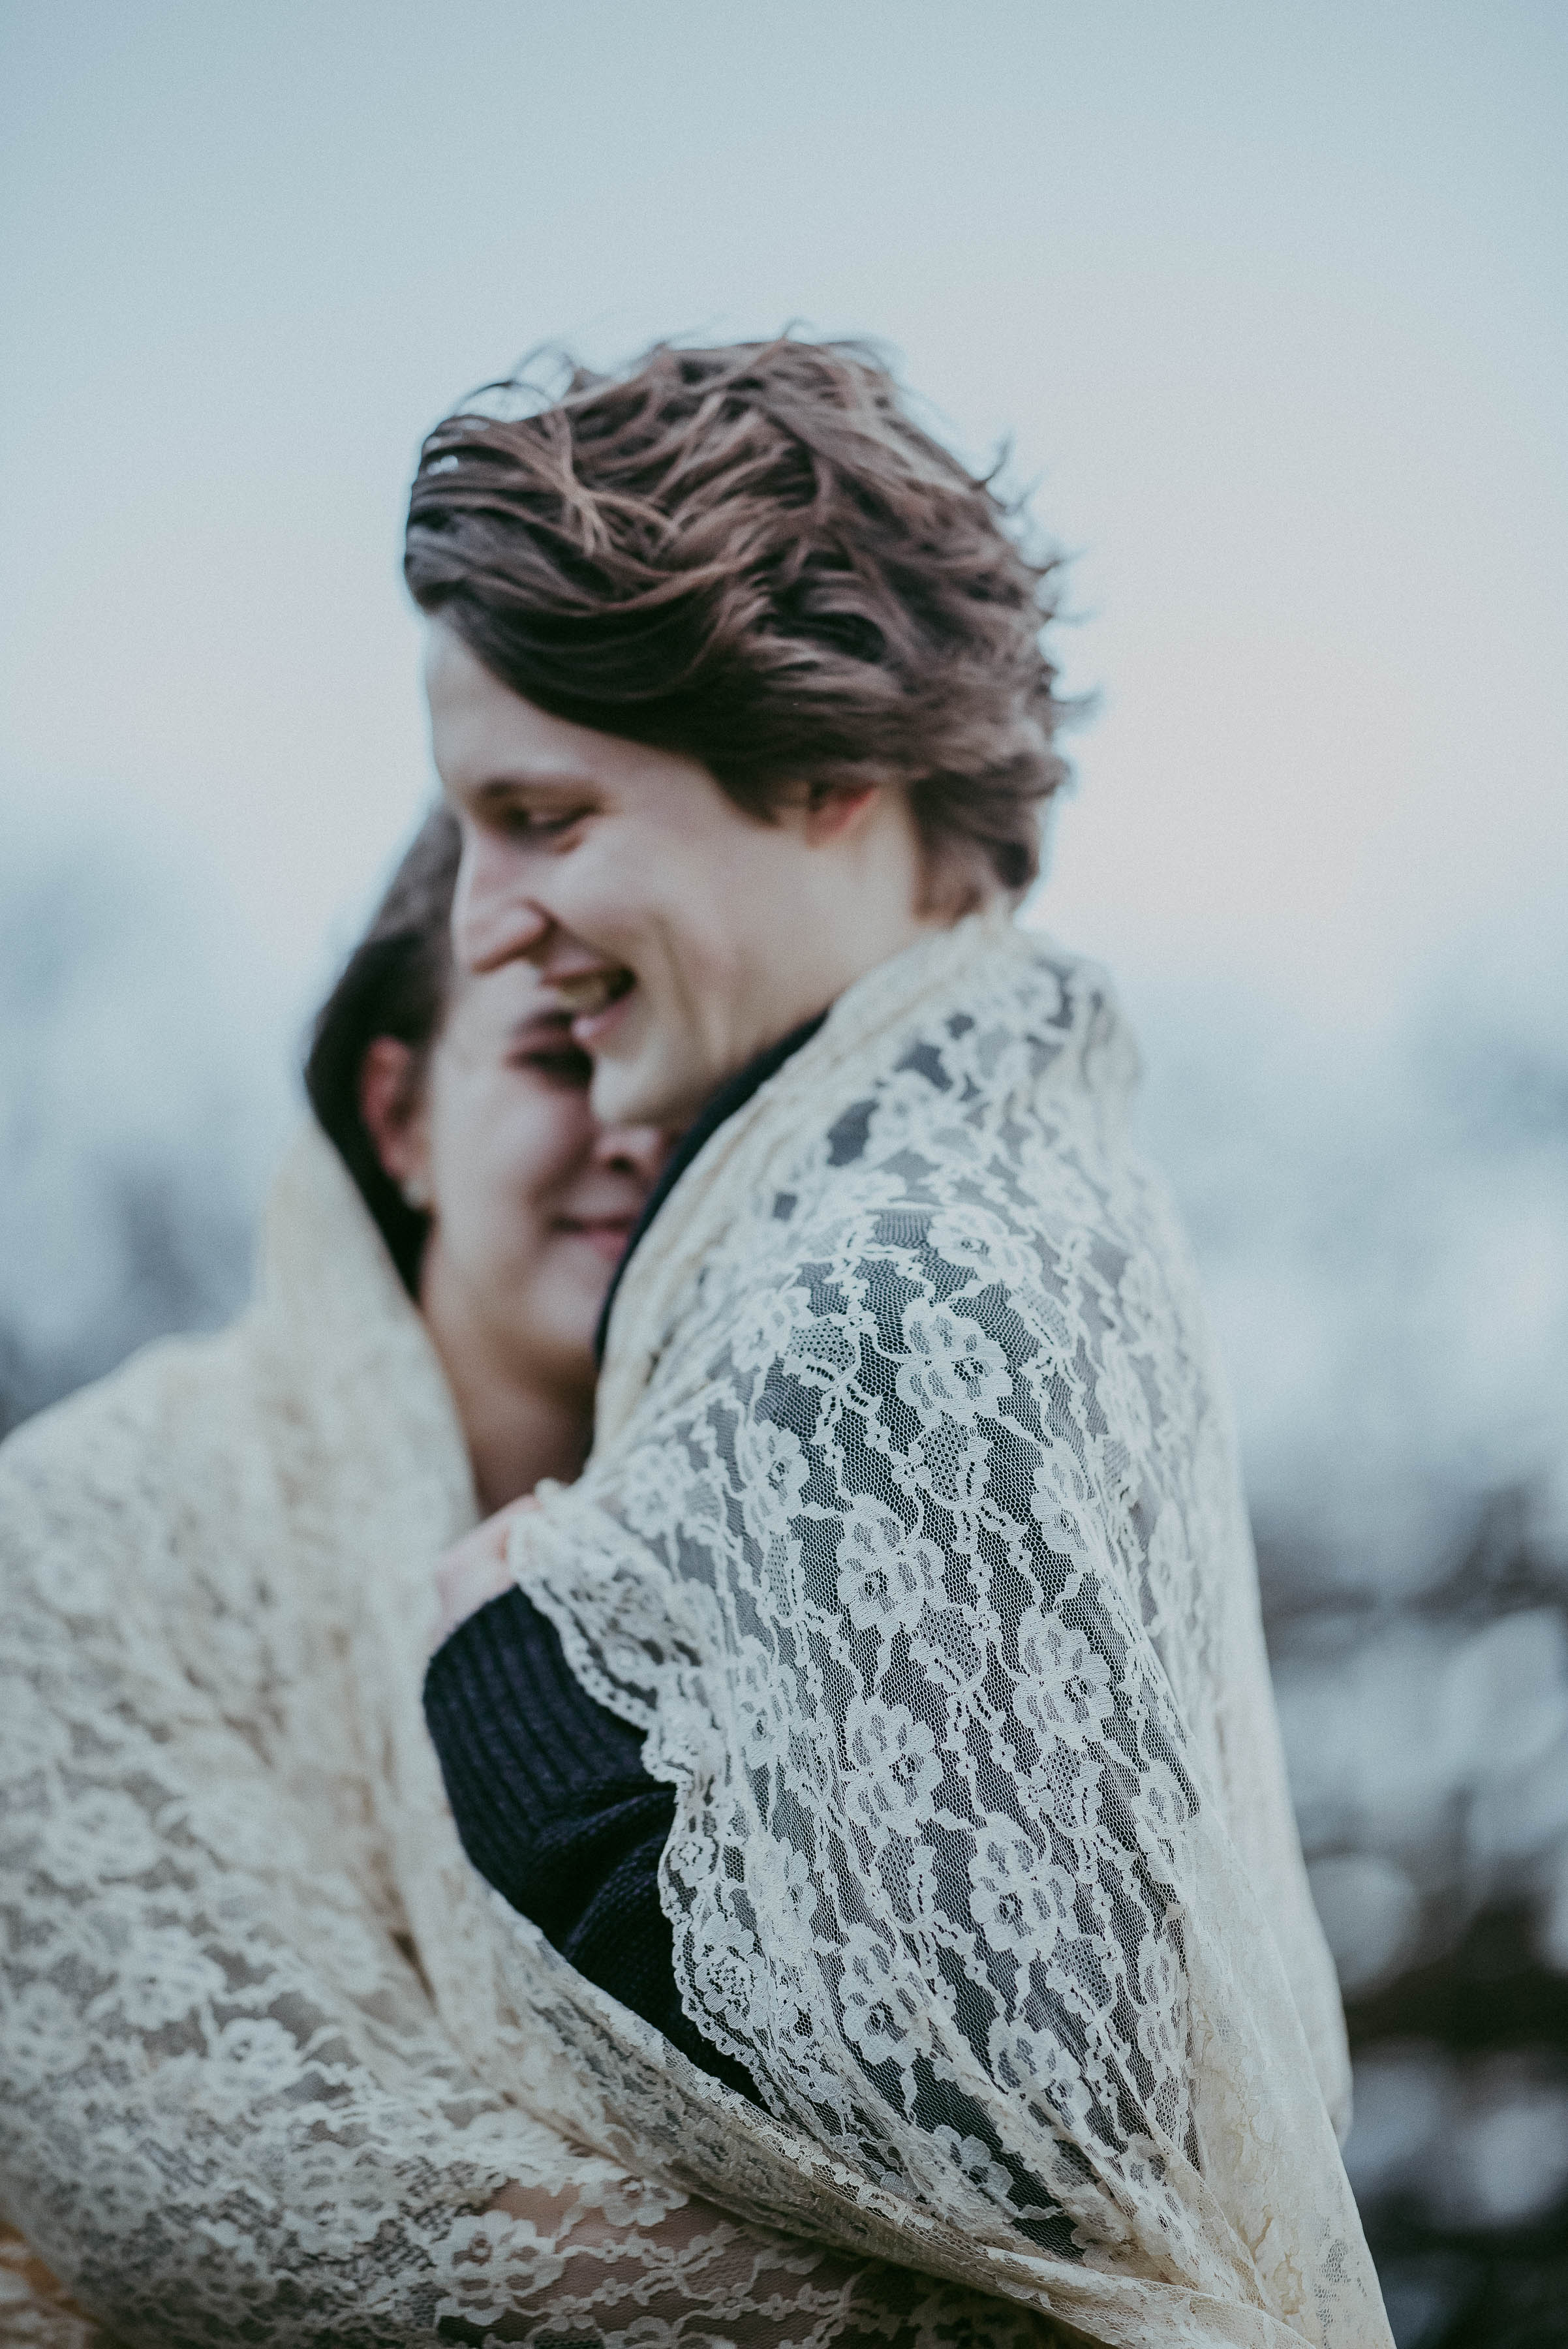 Lets_Spread_Beauty_Engagement Session20190212_000123.jpg